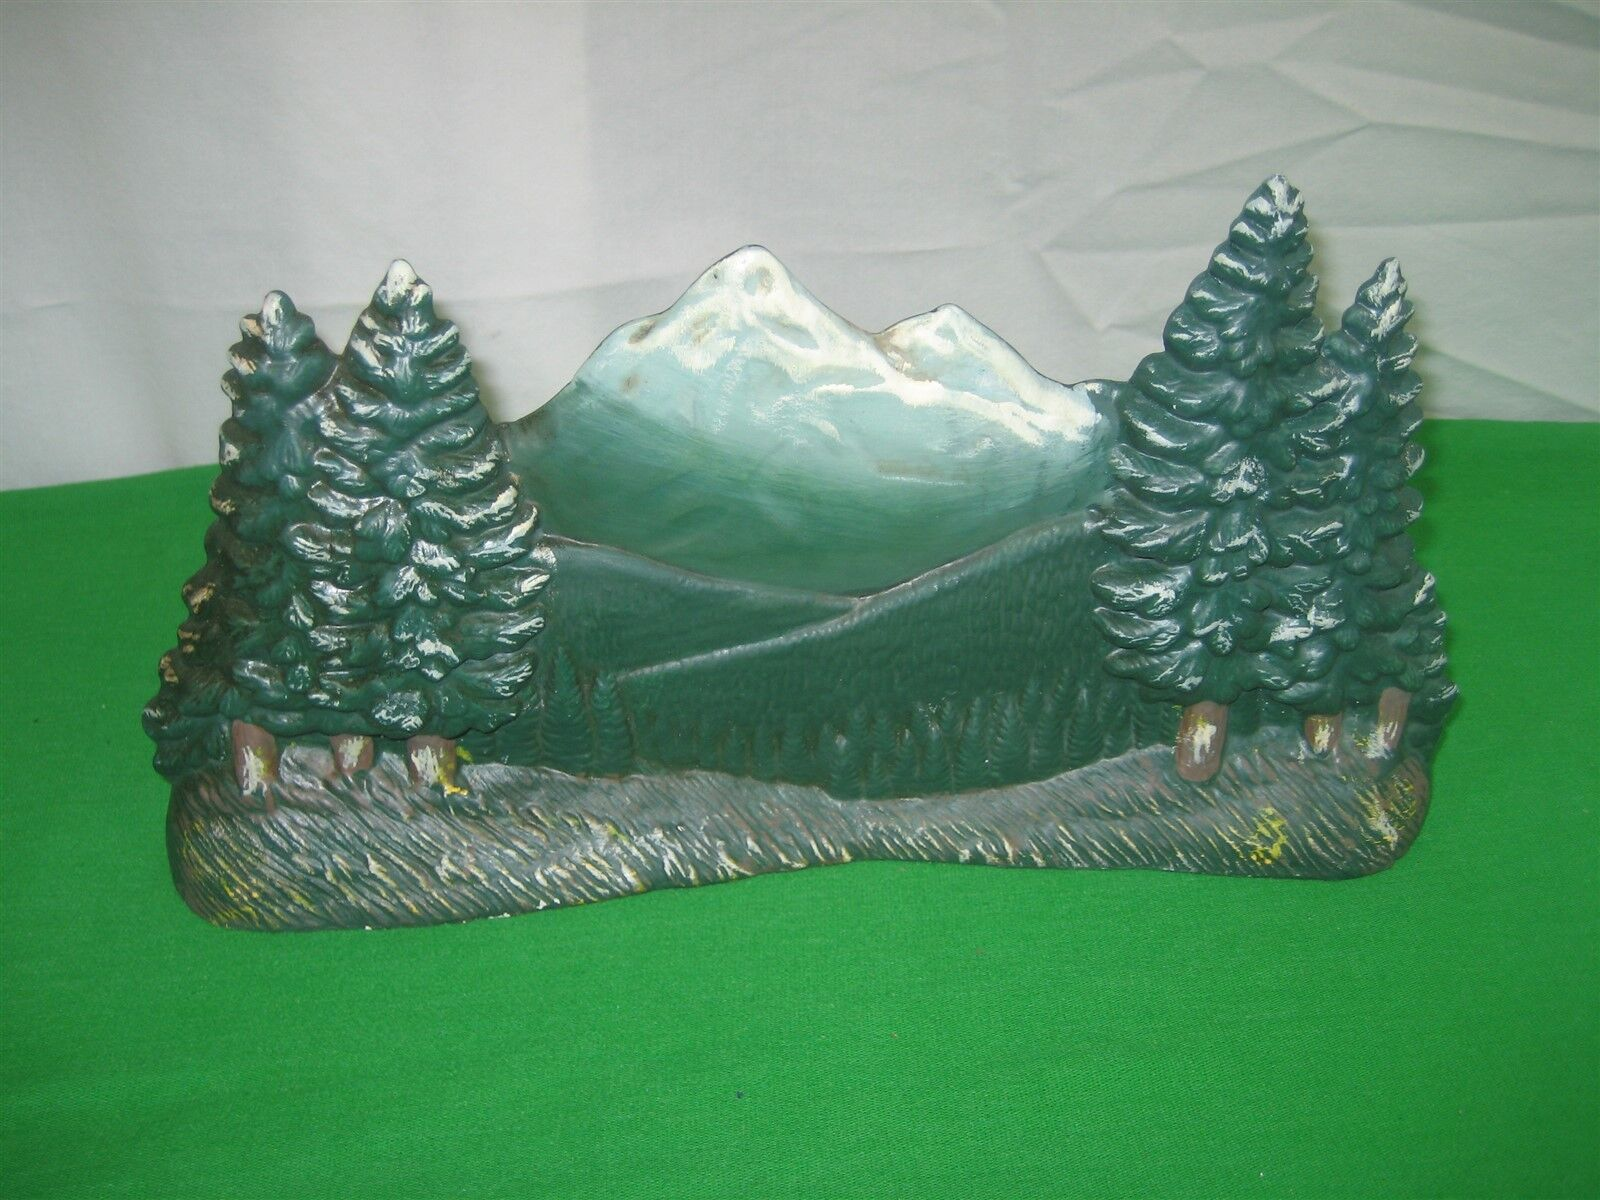 upc 039934000657 1994 ceramic mountain scene with fir trees green